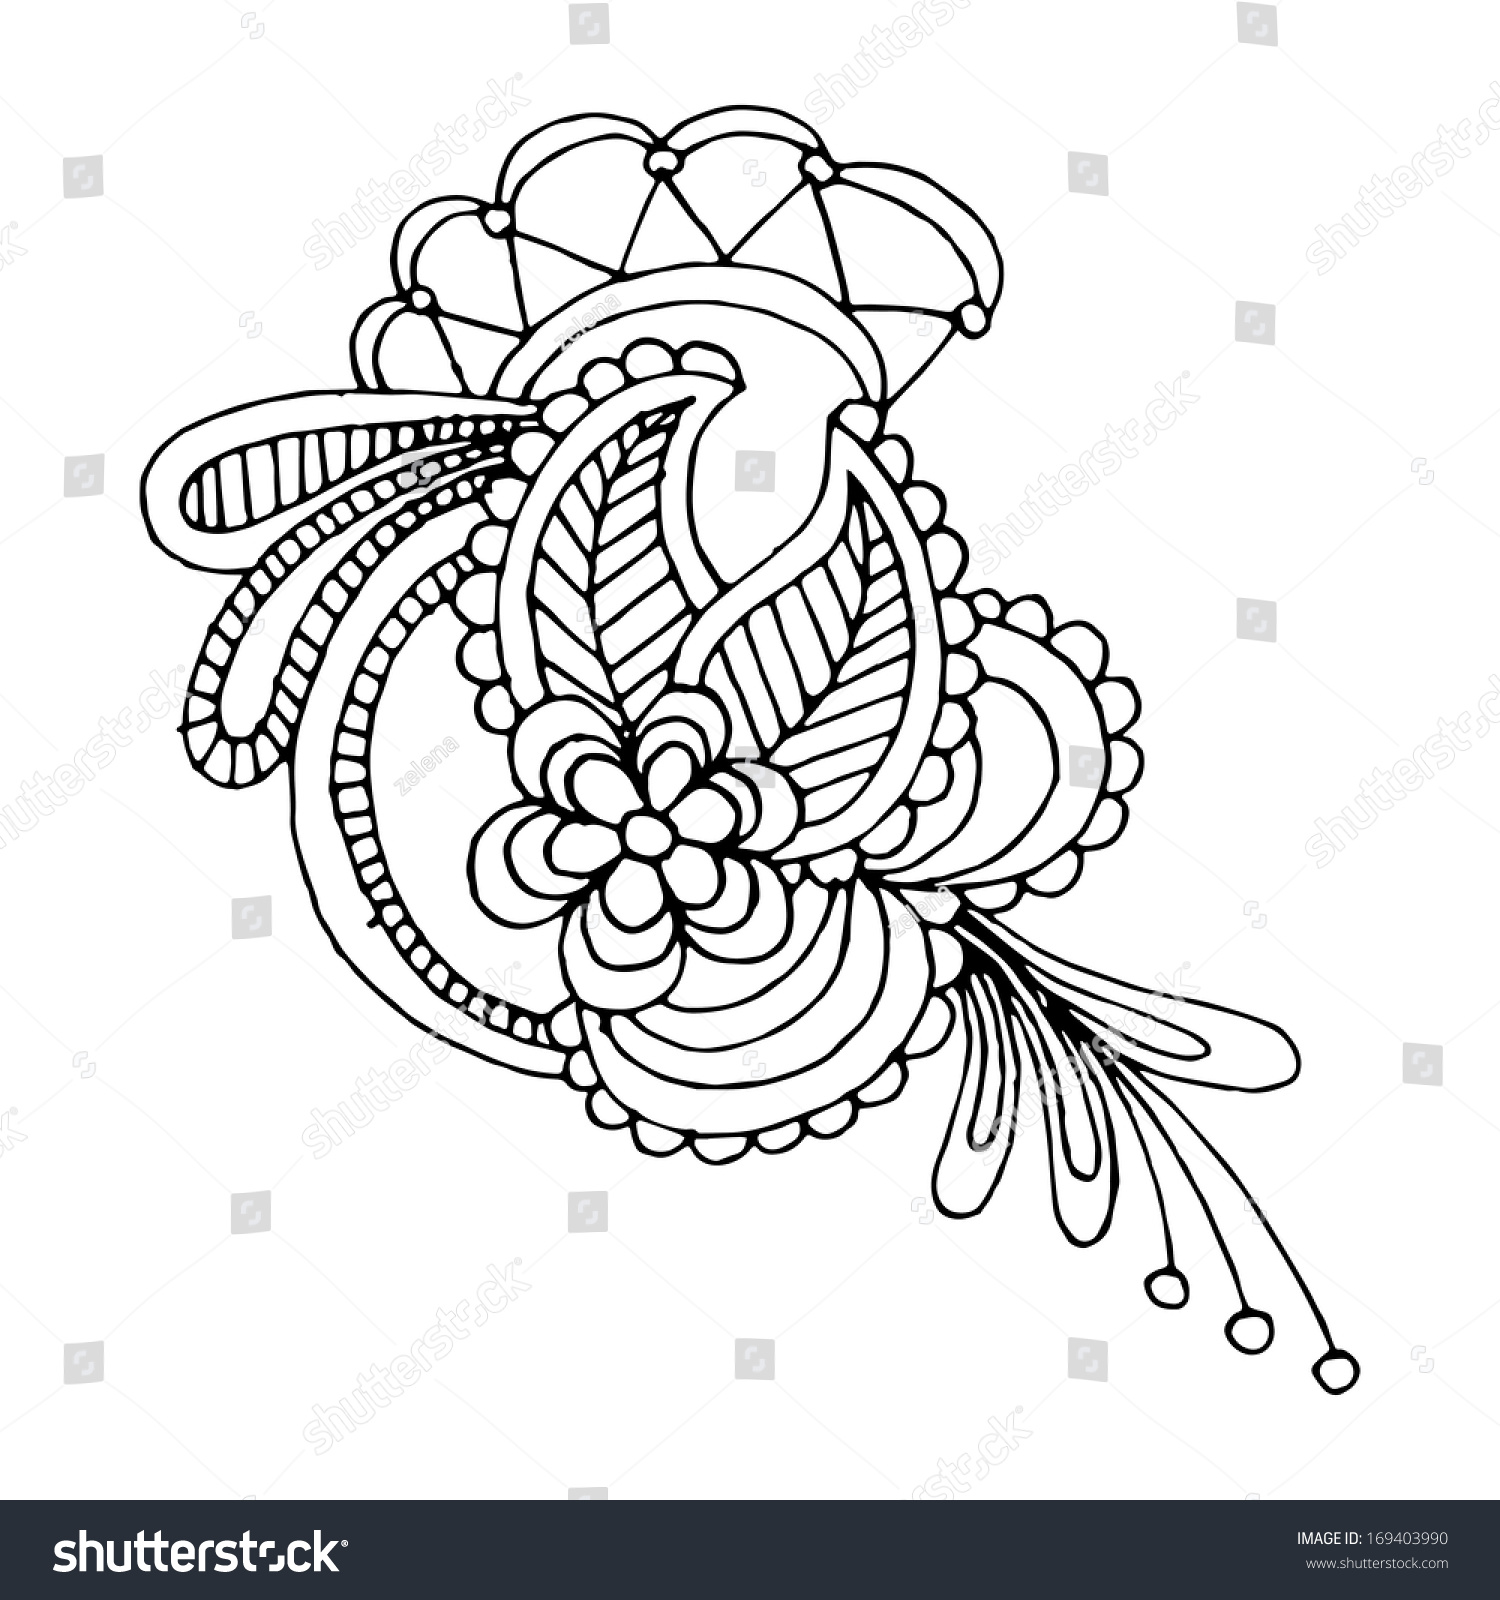 Neckline Embroidery Design Floral Ornamented Pattern Stock Vector ...